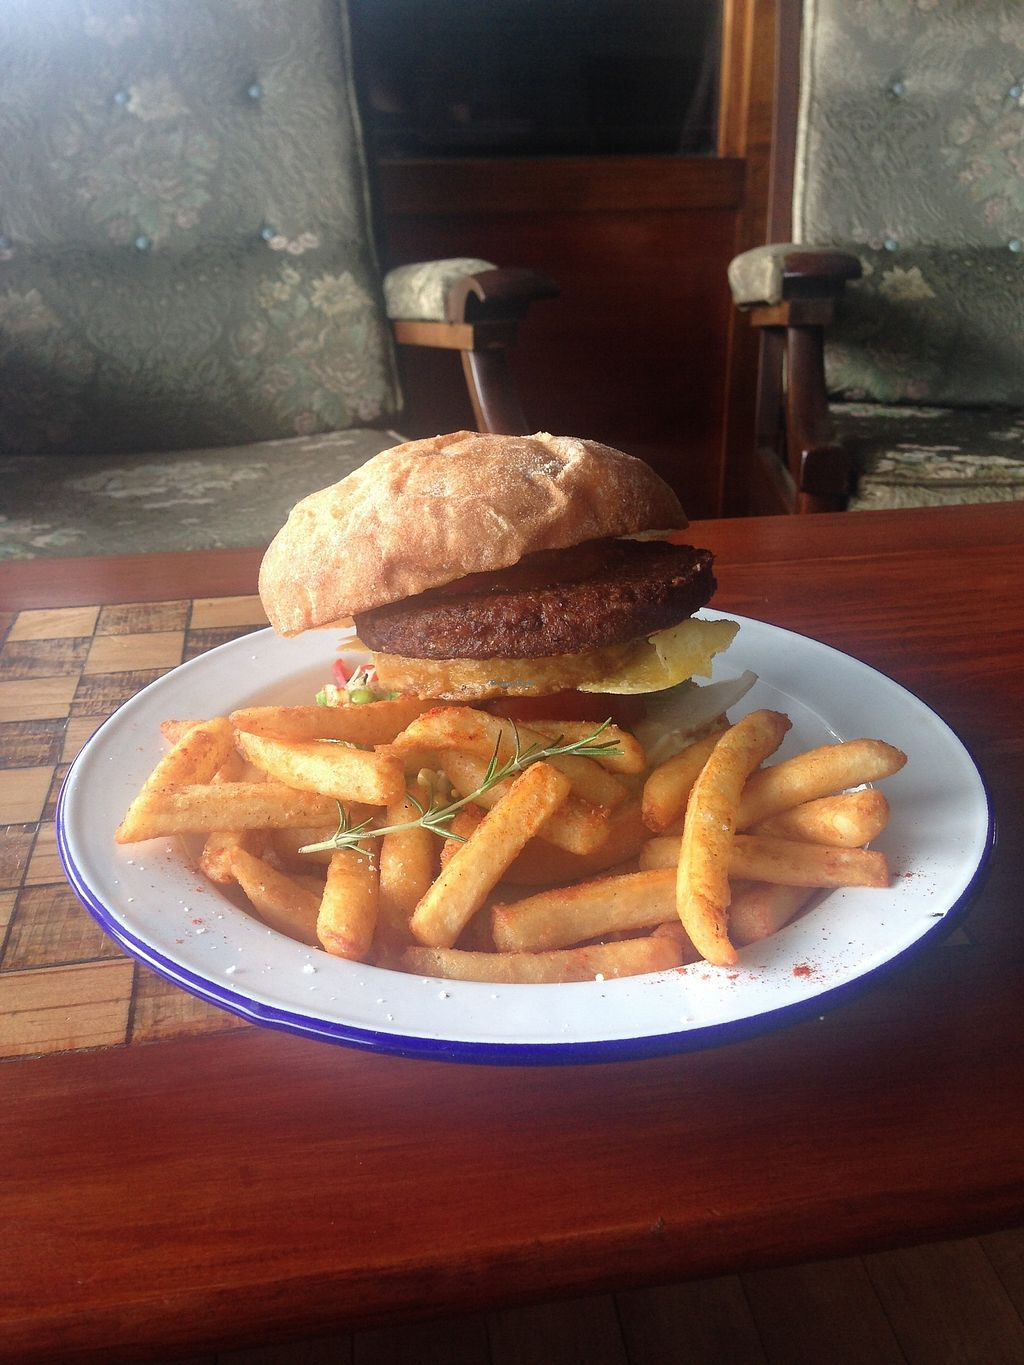 "Photo of Portershed  by <a href=""/members/profile/BrieDunstan"">BrieDunstan</a> <br/>Delicious burger from specials board <br/> February 13, 2018  - <a href='/contact/abuse/image/96516/358702'>Report</a>"